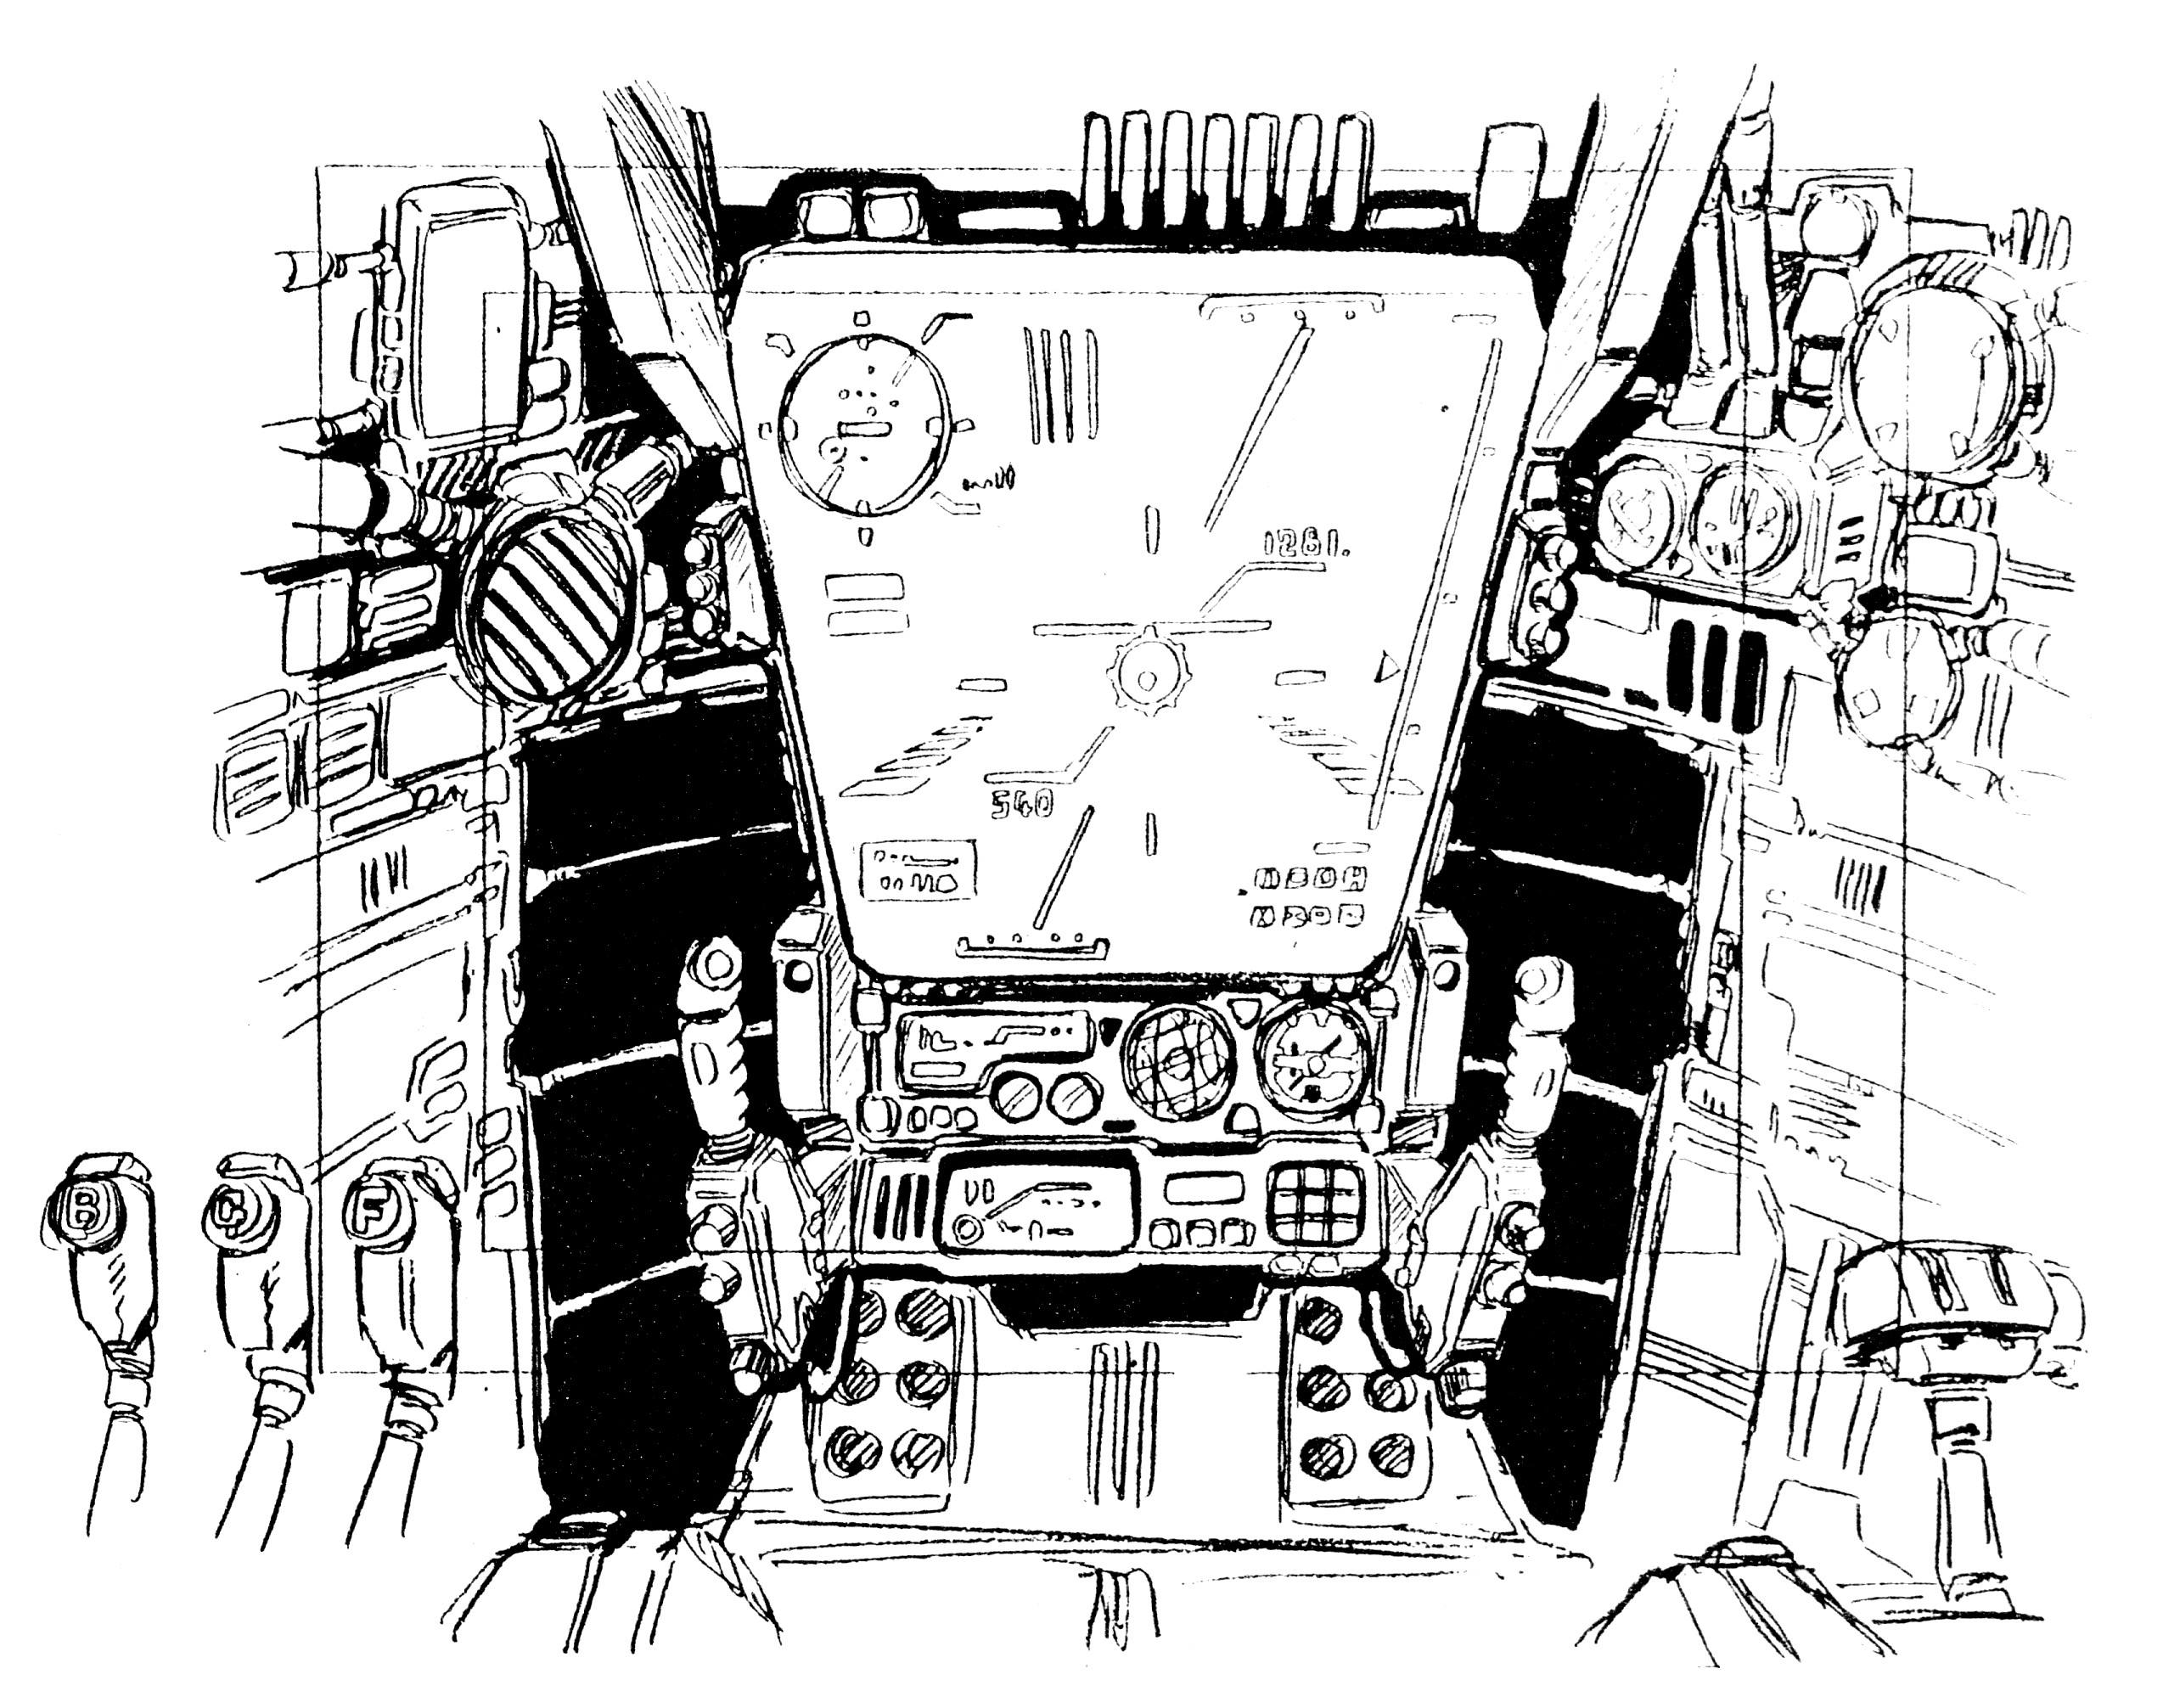 VF-1 Block 1-5 Valkyrie 3MCCS-1C Cockpit Battloid mode 7